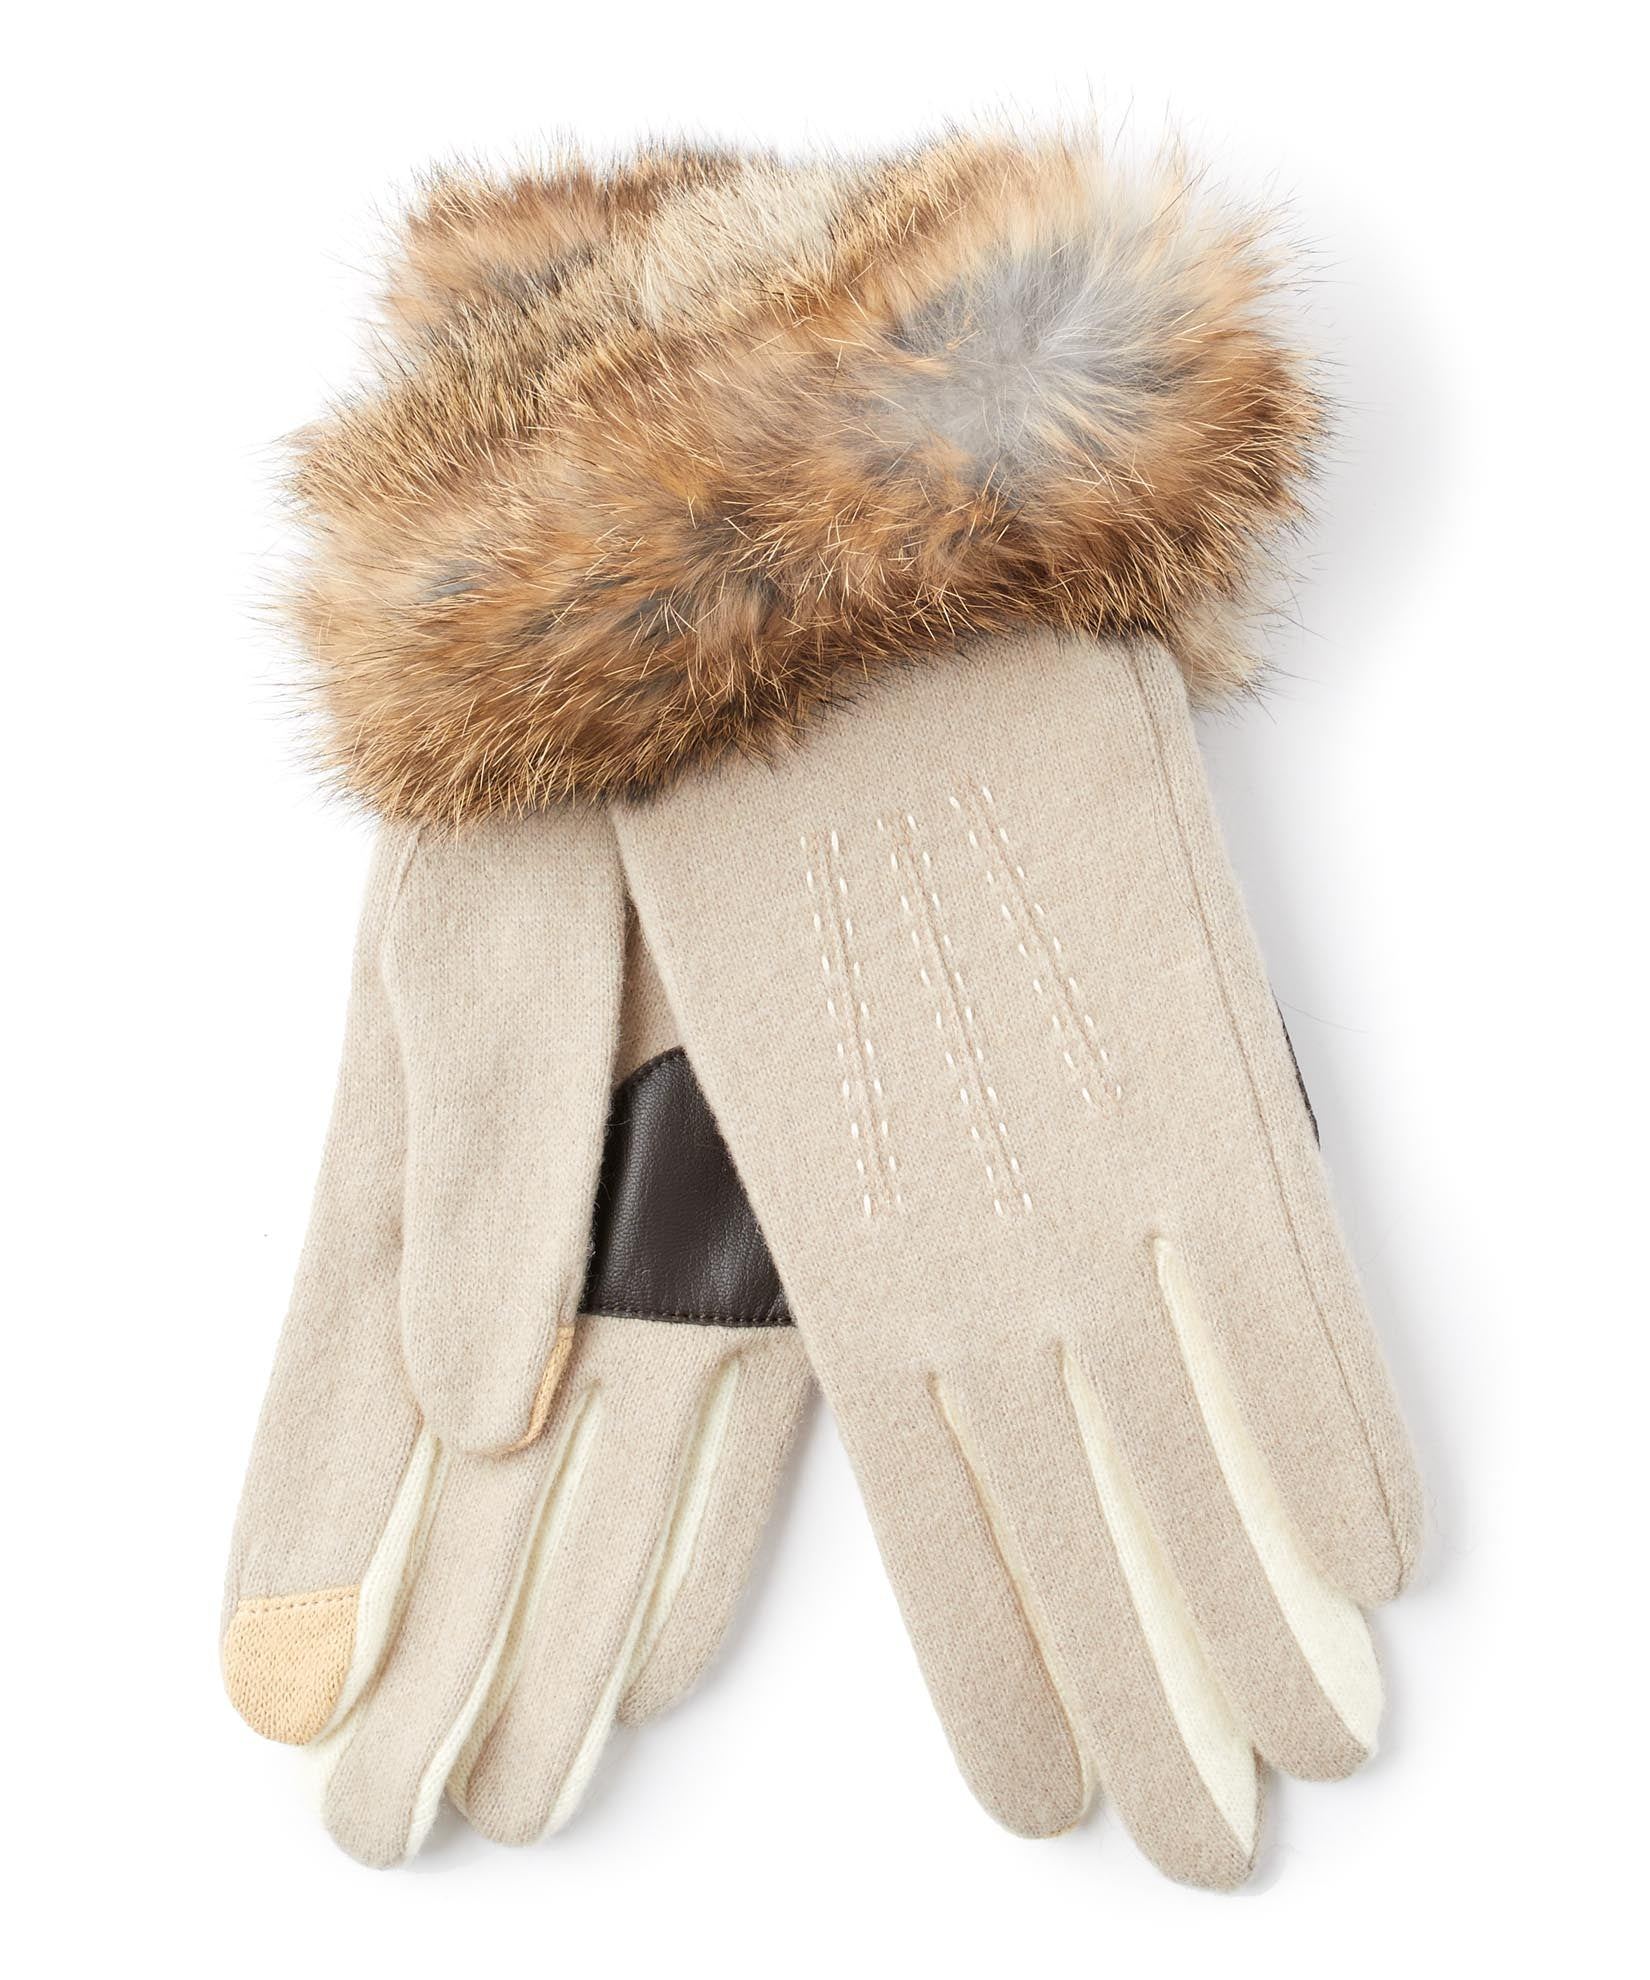 Oatmeal - Color Block Fur Cuff Glove